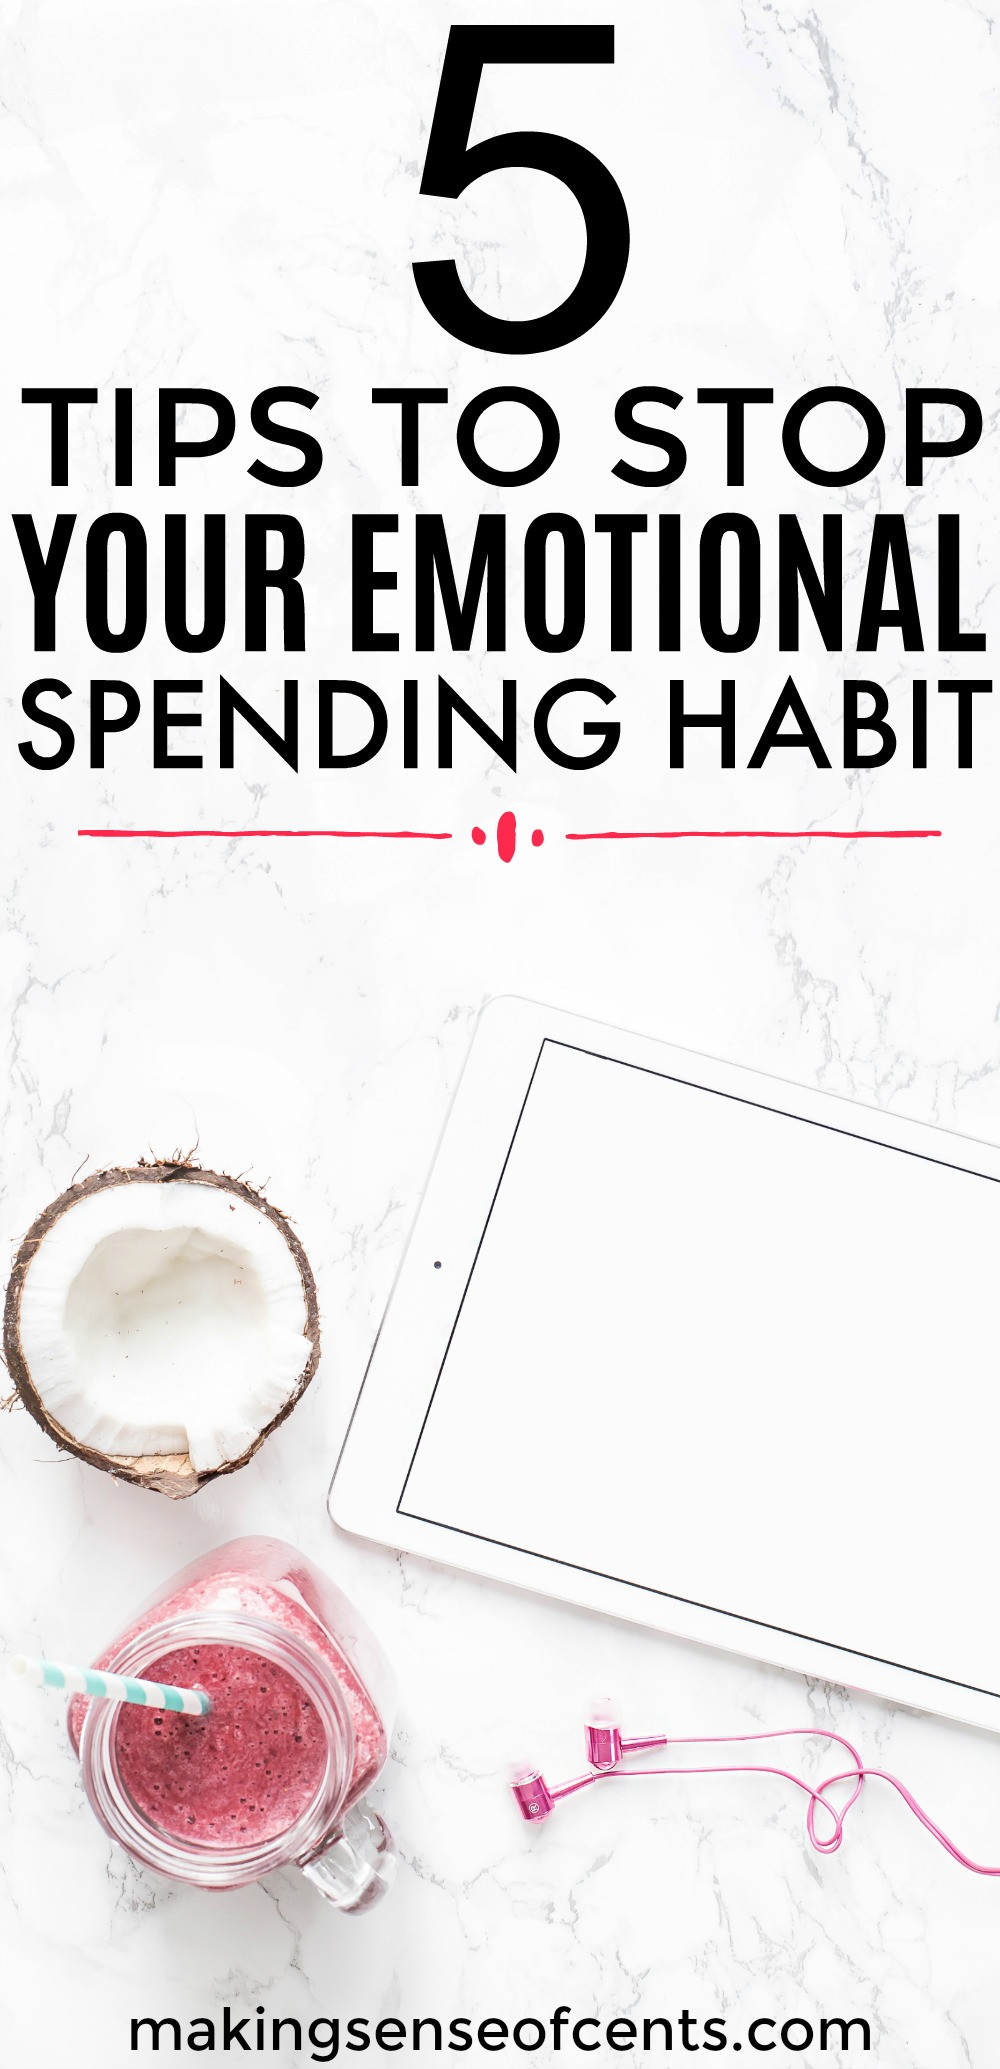 Find out how to stop your emotional spending habits for good!